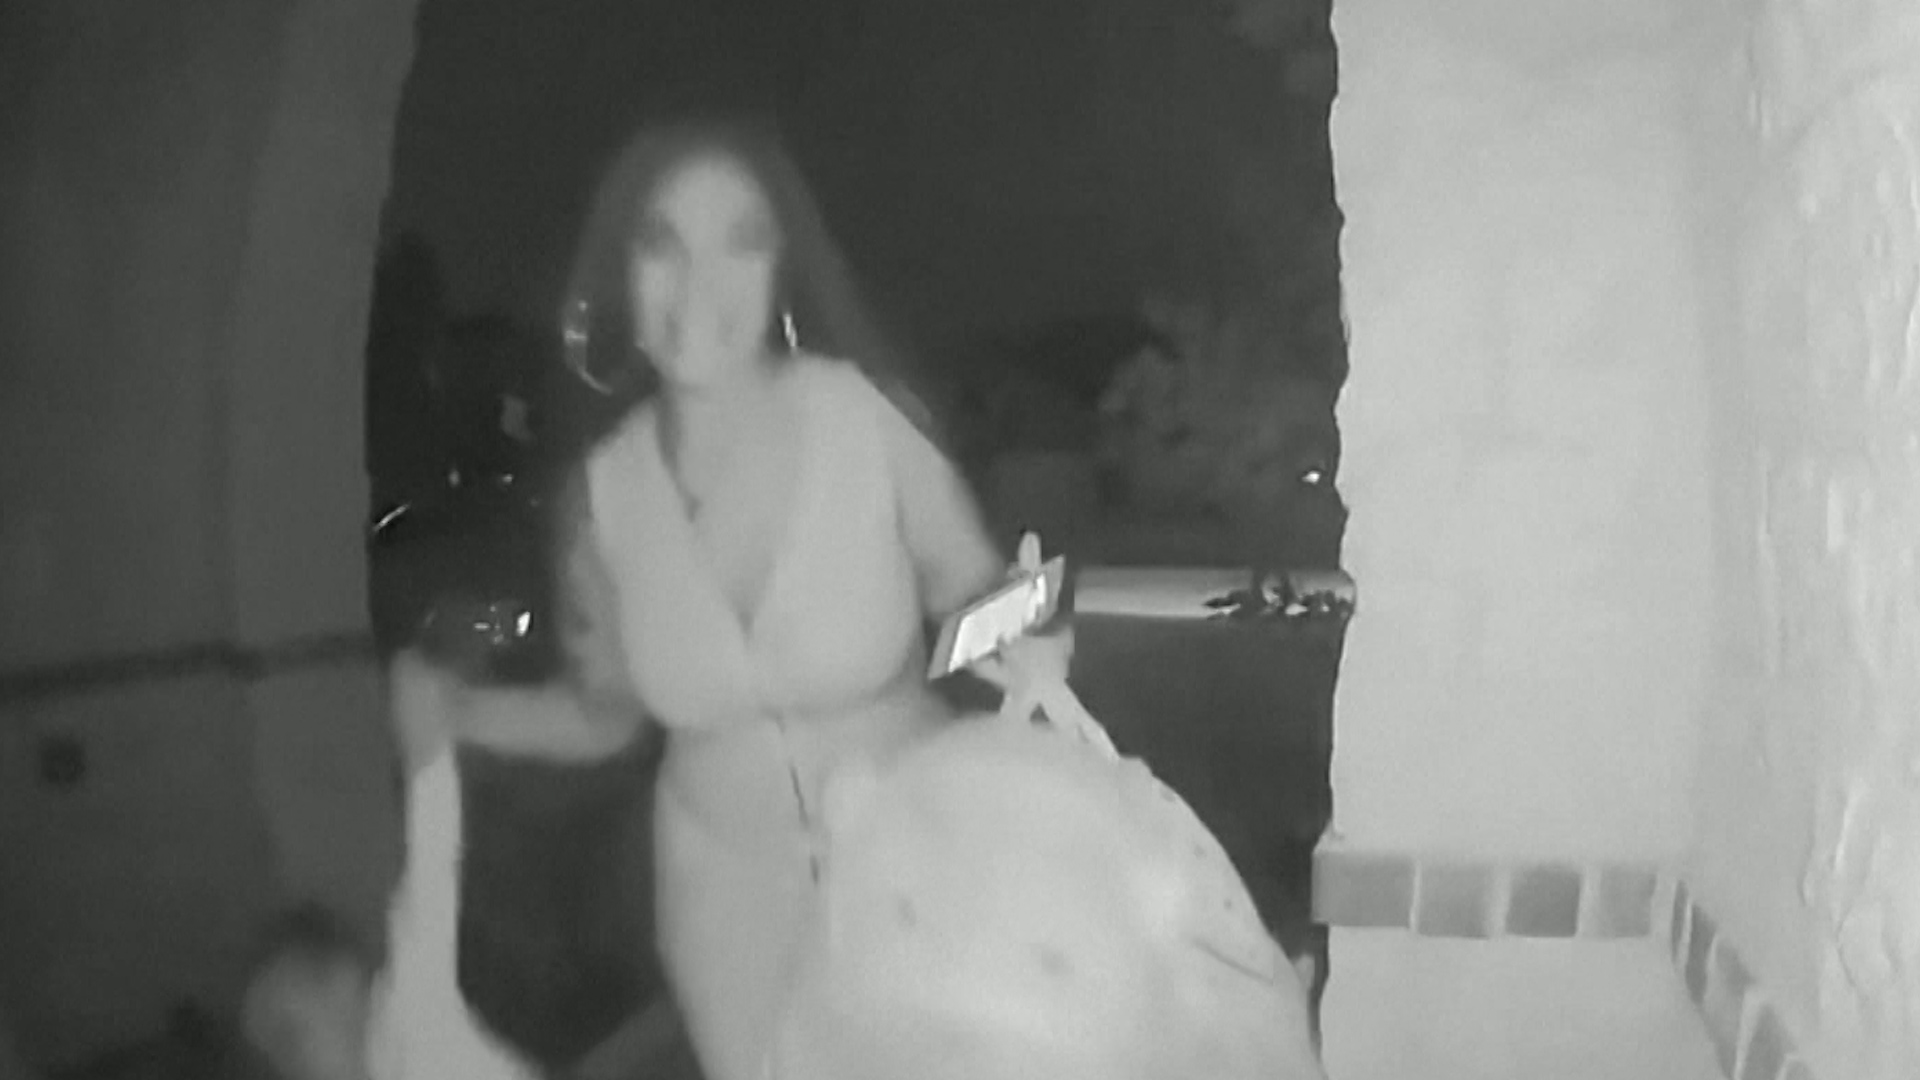 Woman Seen Abandoning 2-Year-Old On Stranger's Doorstep Near Houston